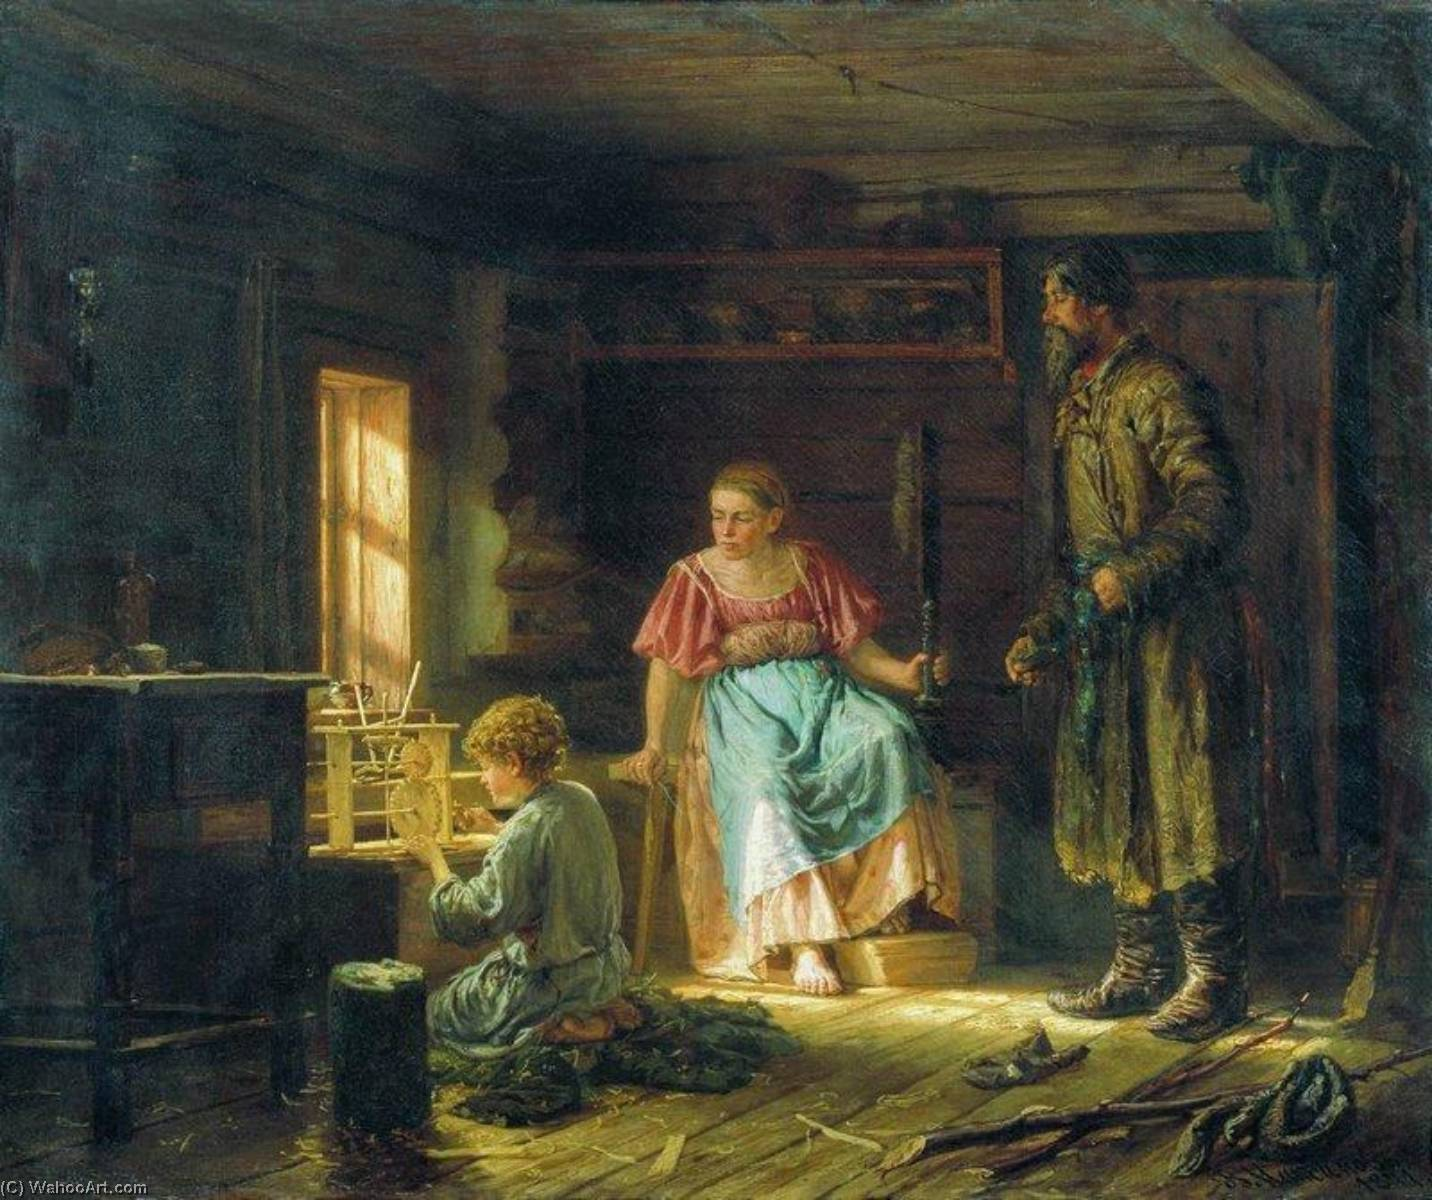 The Little Mechanic, 1871 by Vasily Maximov | Museum Art Reproductions Vasily Maximov | WahooArt.com